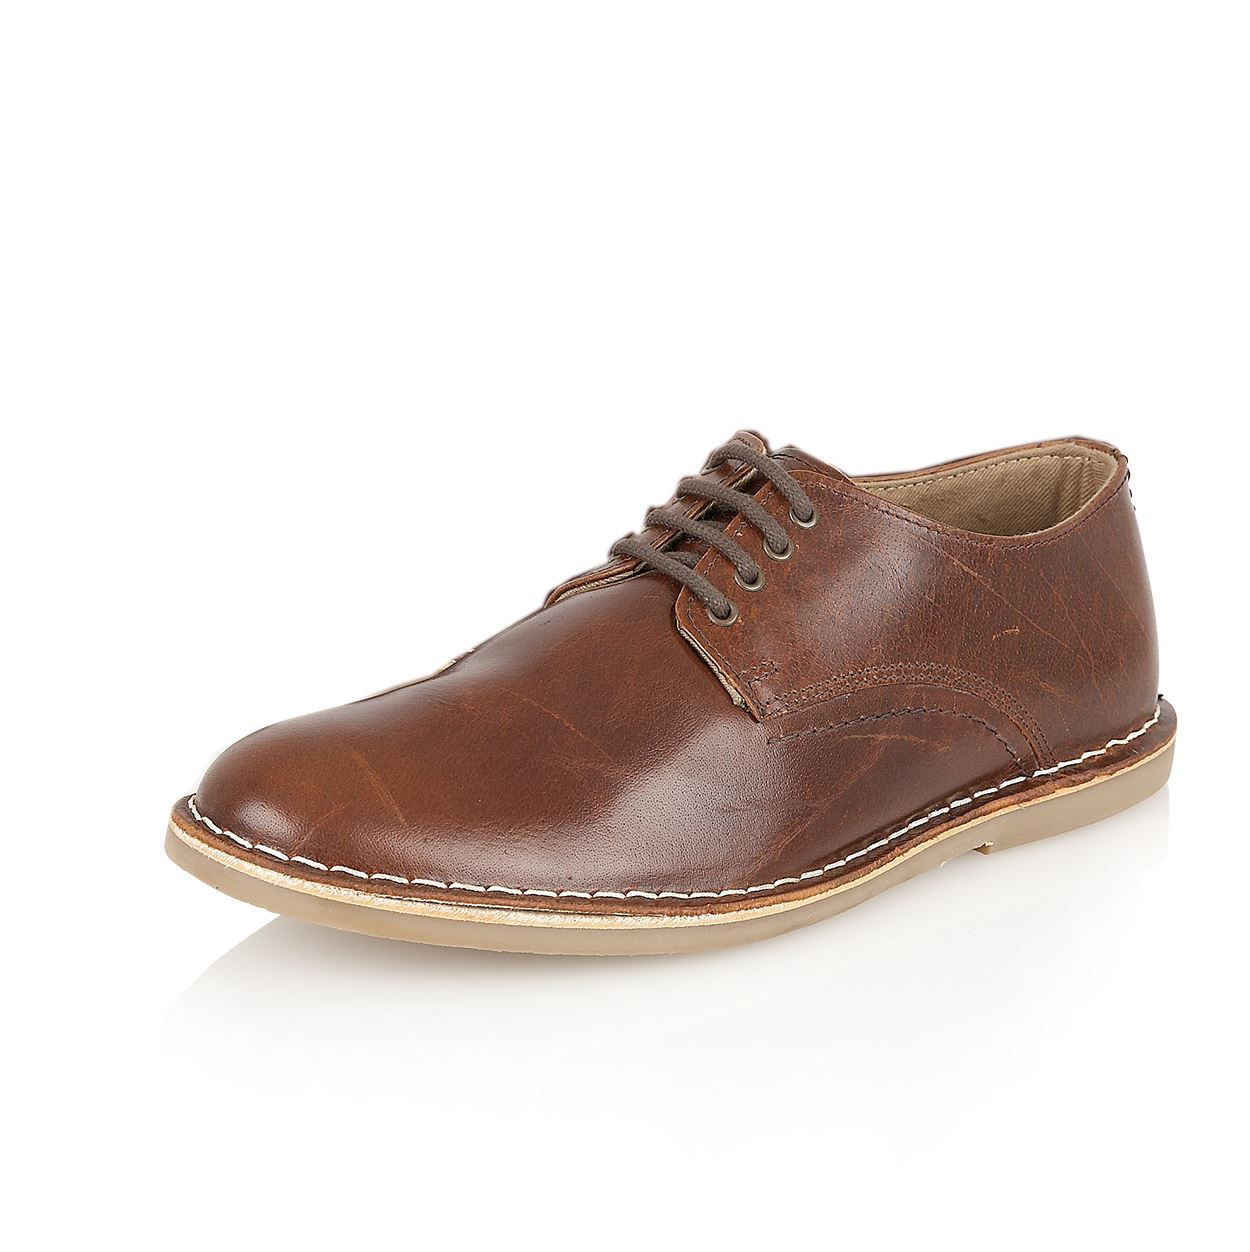 desert boots leather mens classic casual chukka boots ankle shoes ebay. Black Bedroom Furniture Sets. Home Design Ideas